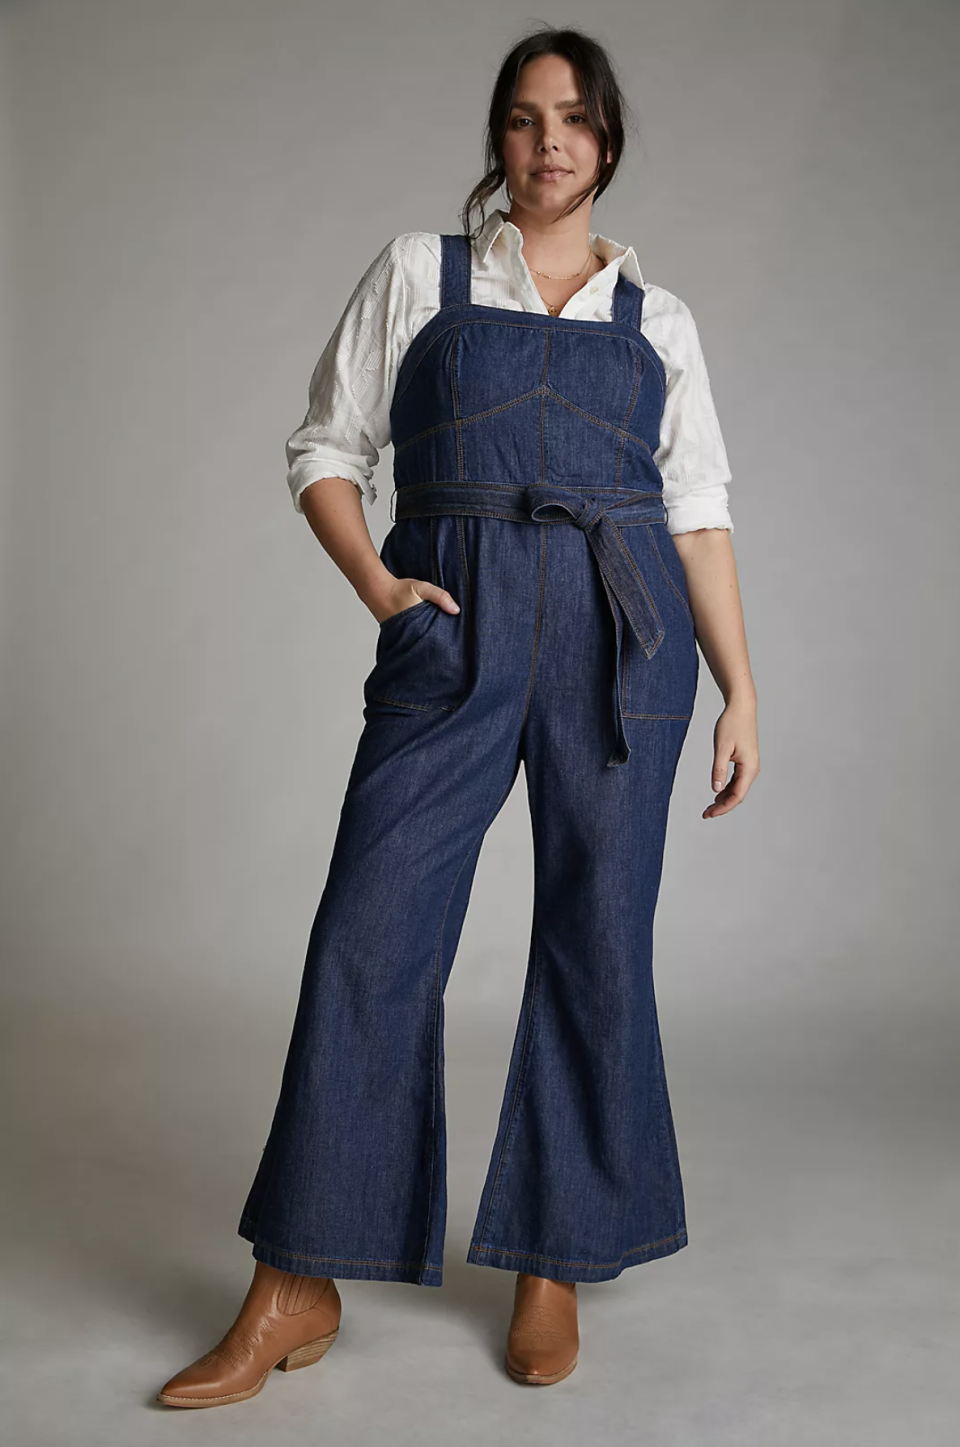 plus size brunette model posing in denim jumpsuit and white shirt and brown boots